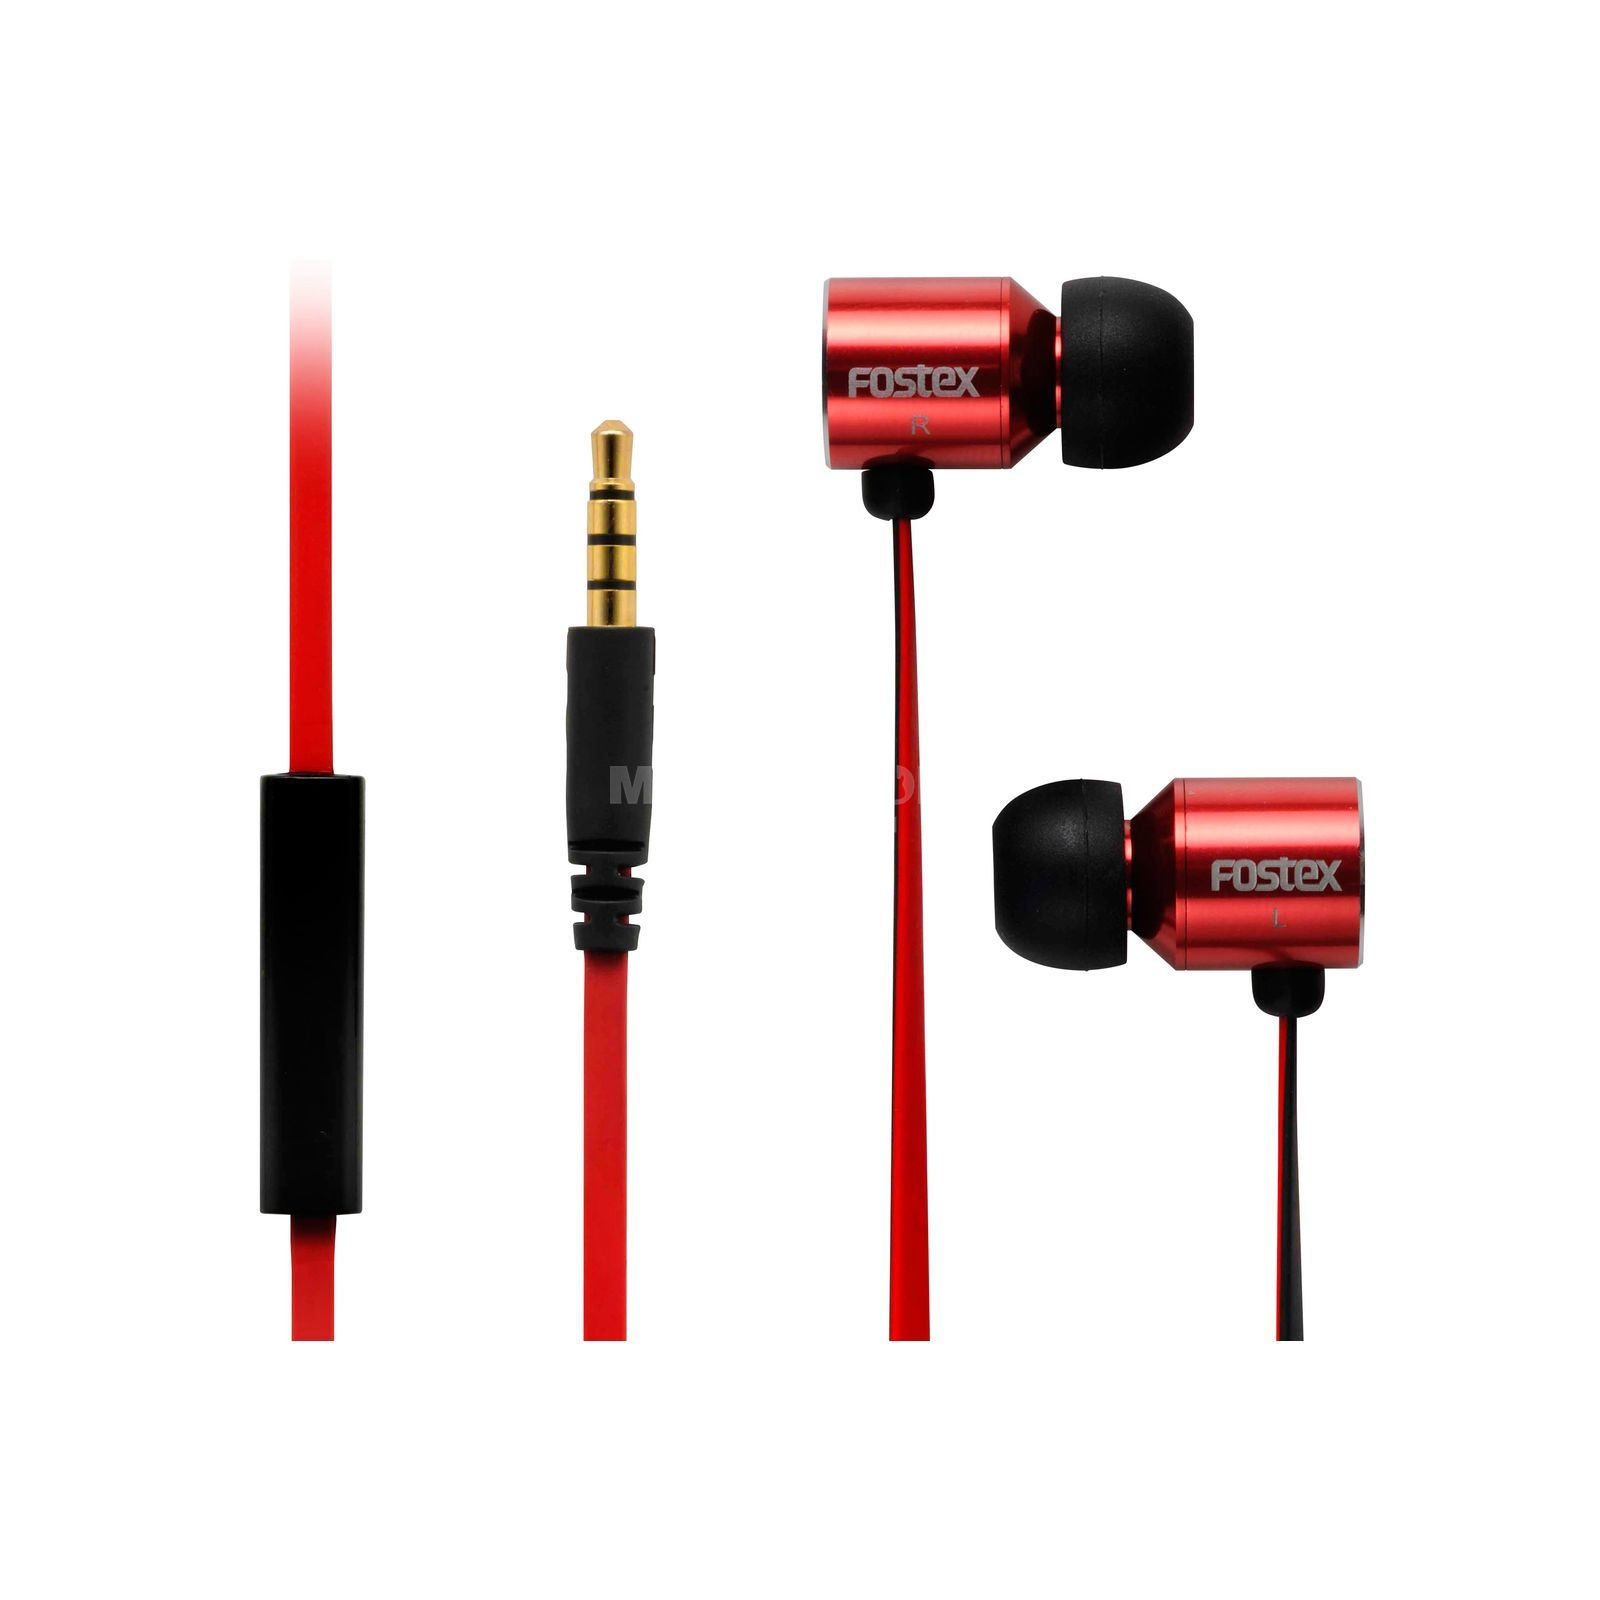 Fostex TE-03R Stereo-Ohrhörer / Mikro 20Hz-20kHz, 16 Ohm, rot Product Image